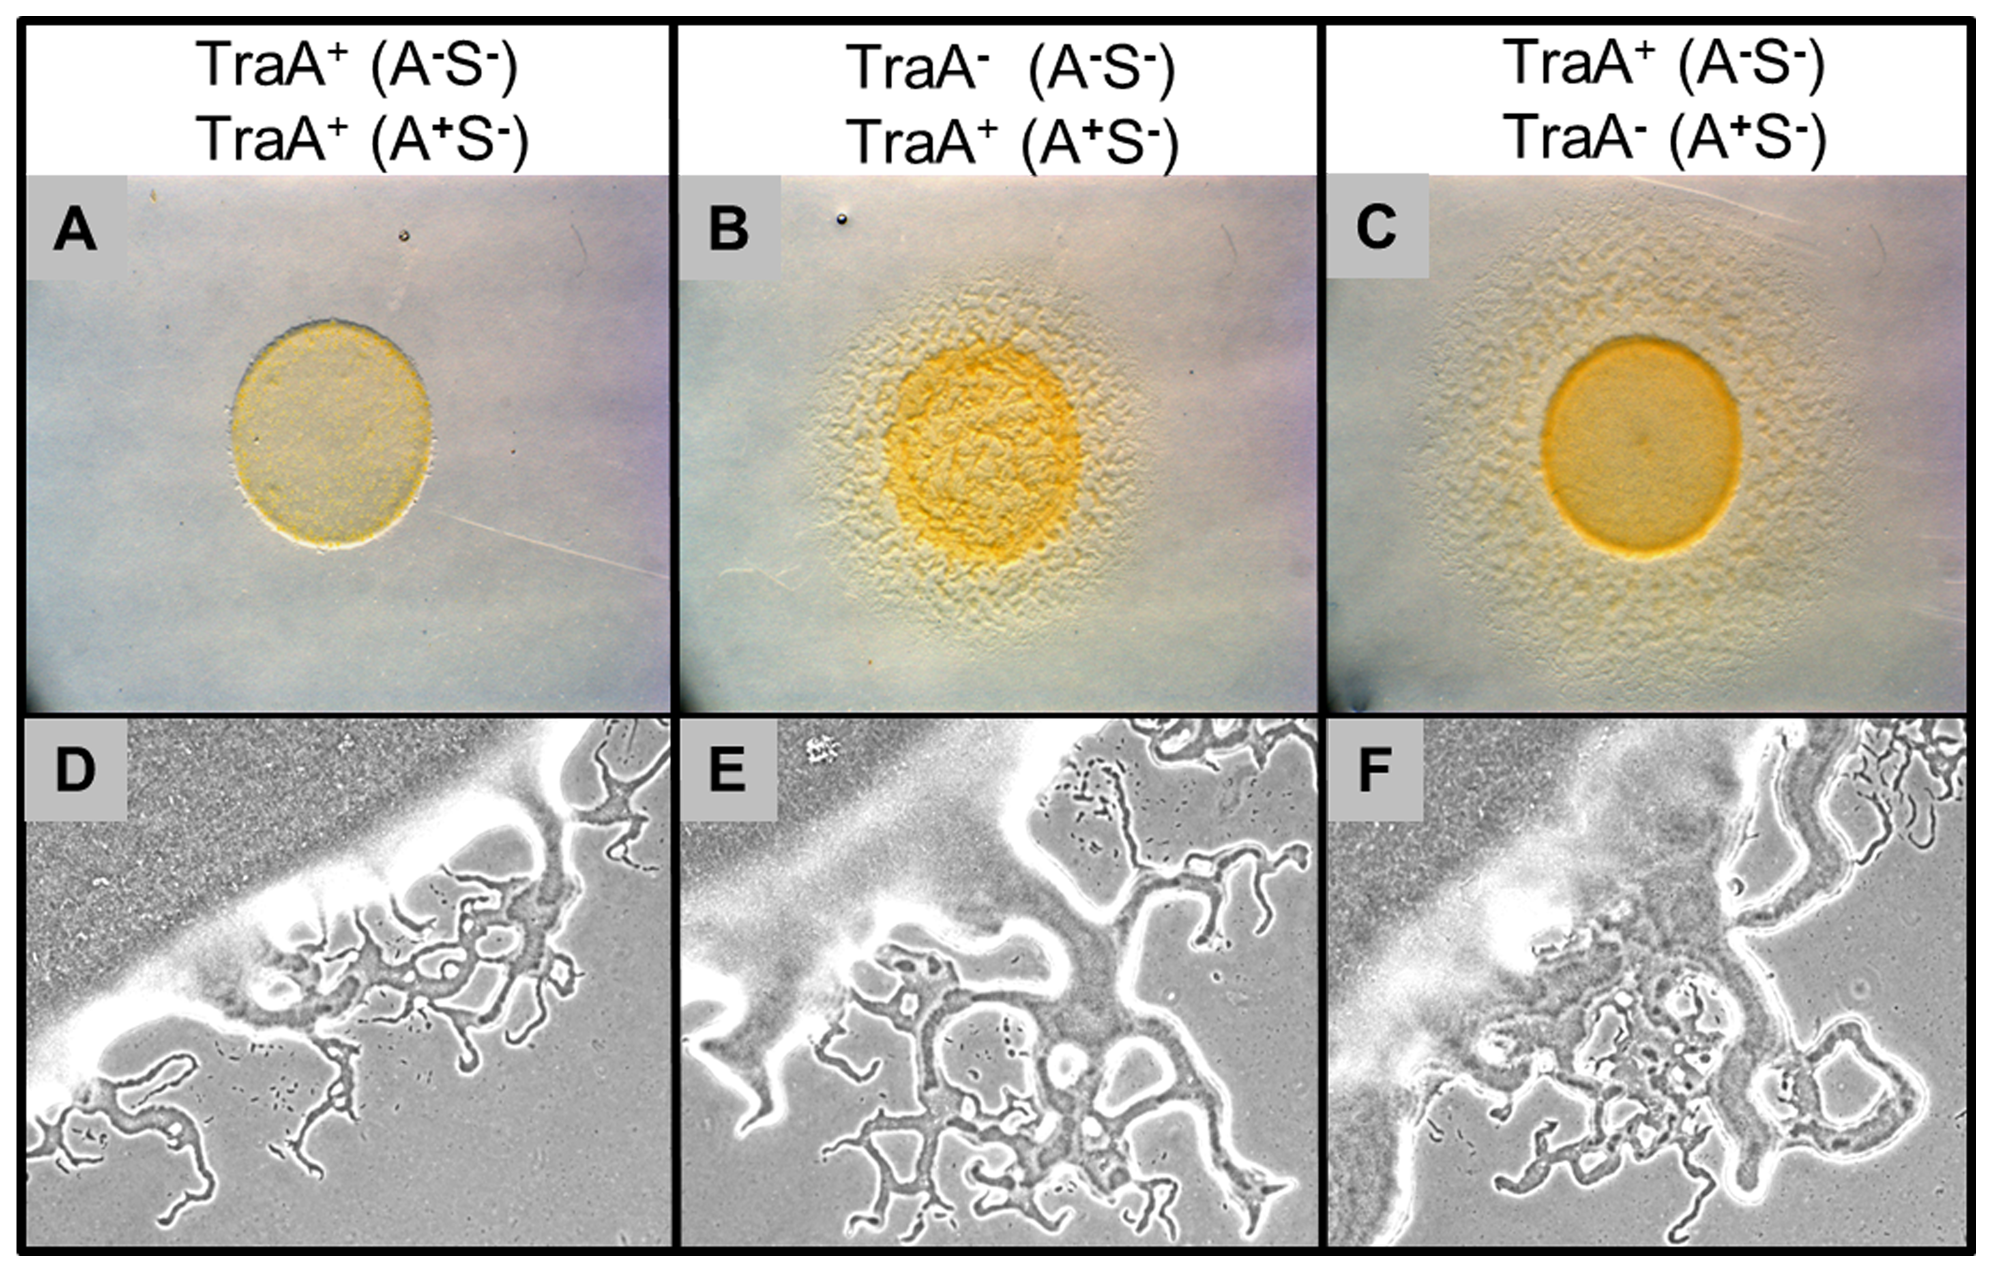 Outer membrane exchange regulates mixed colony swarm expansion.